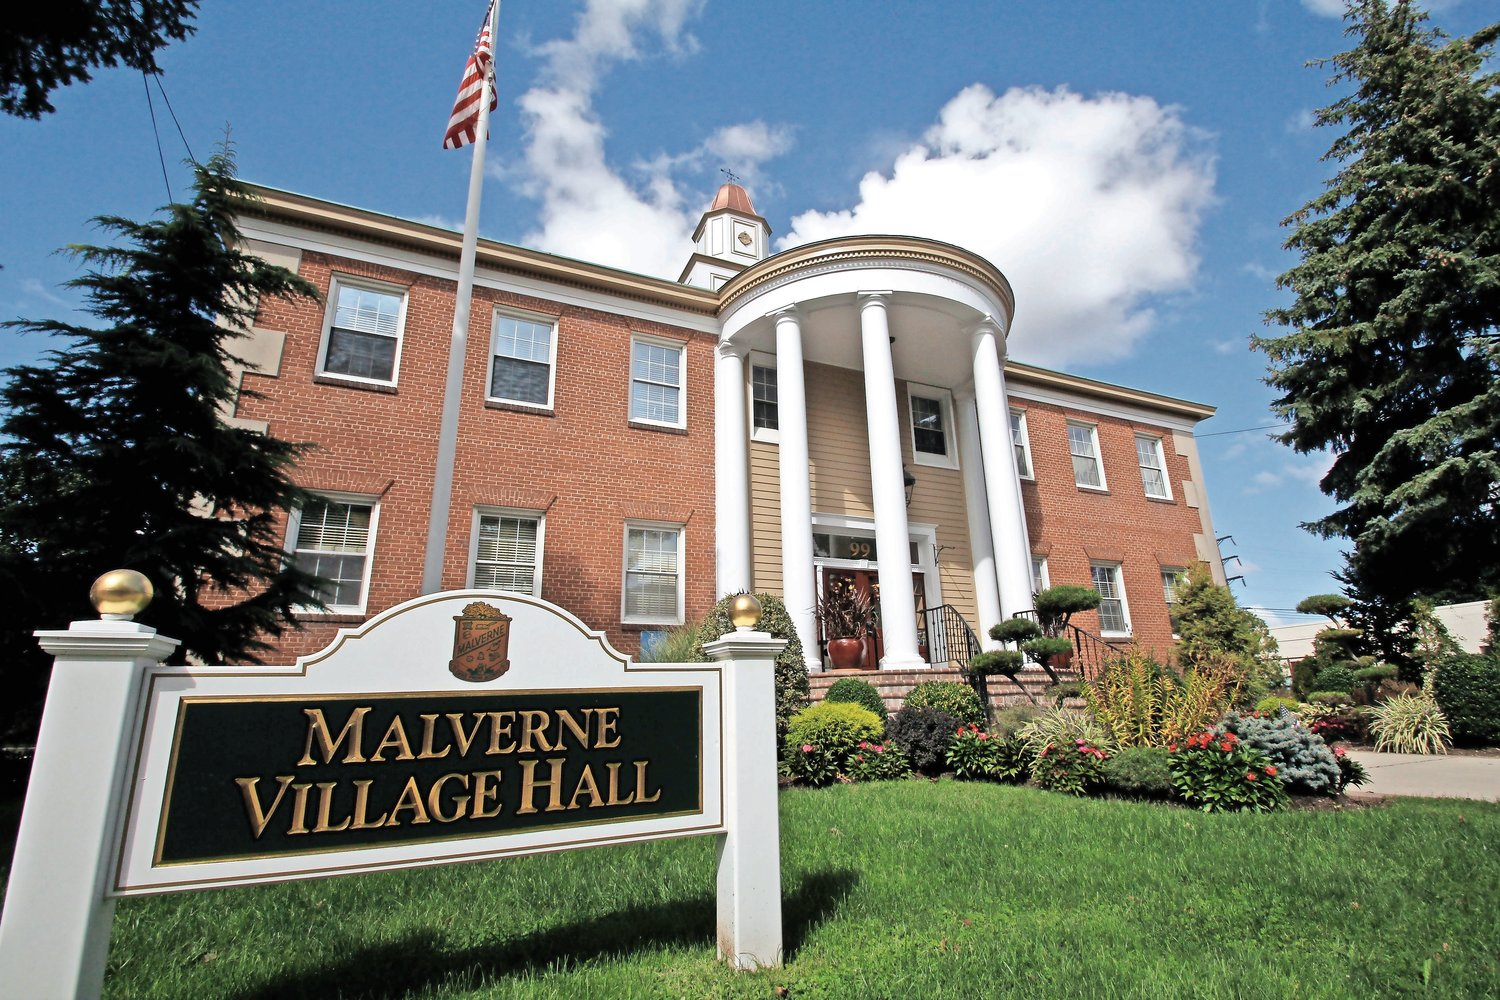 Malverne's village board unanimously approved no tax increase in its upcoming $17.2 million budget for the 2019-20 fiscal year, which begins on June 1.